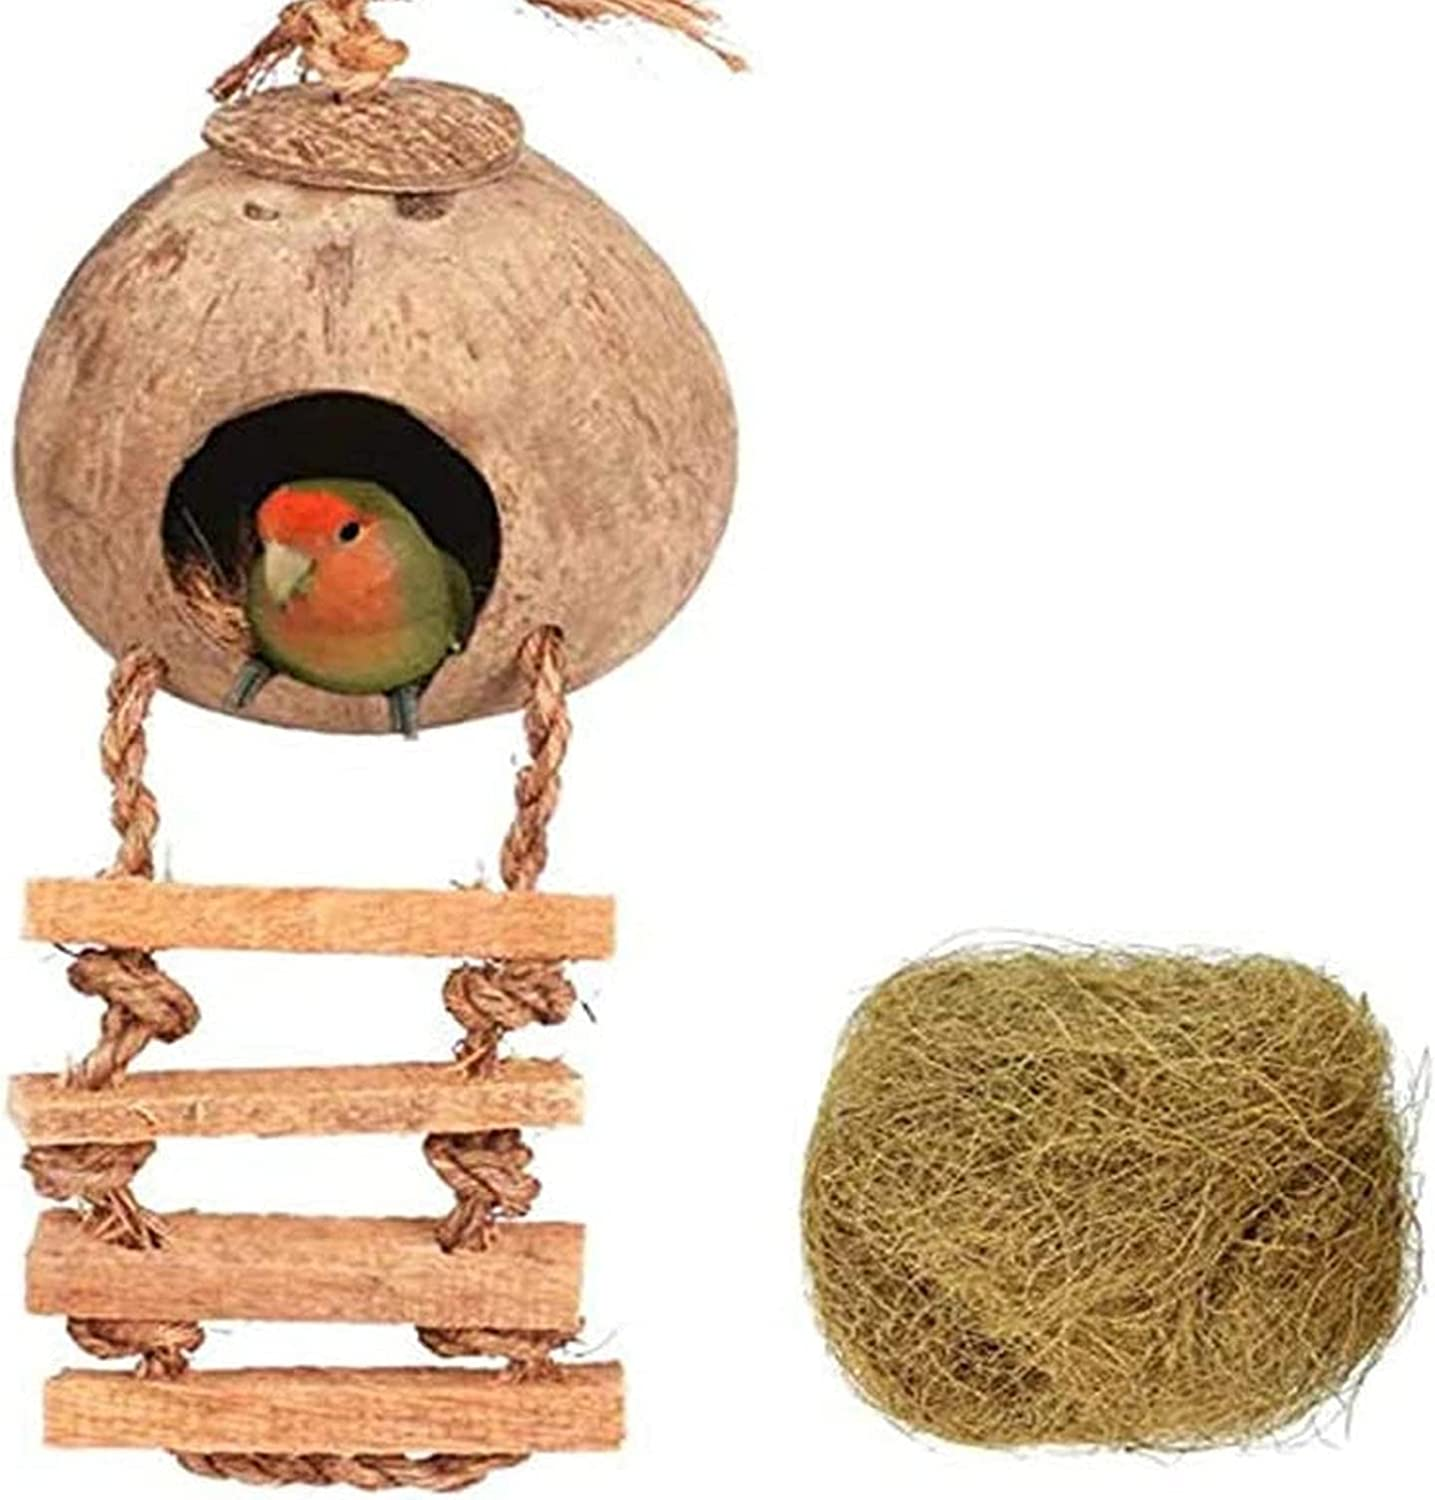 Tfwadmx Coconut Hide specialty shop with Ladder Natural Fiber Hanging Now free shipping